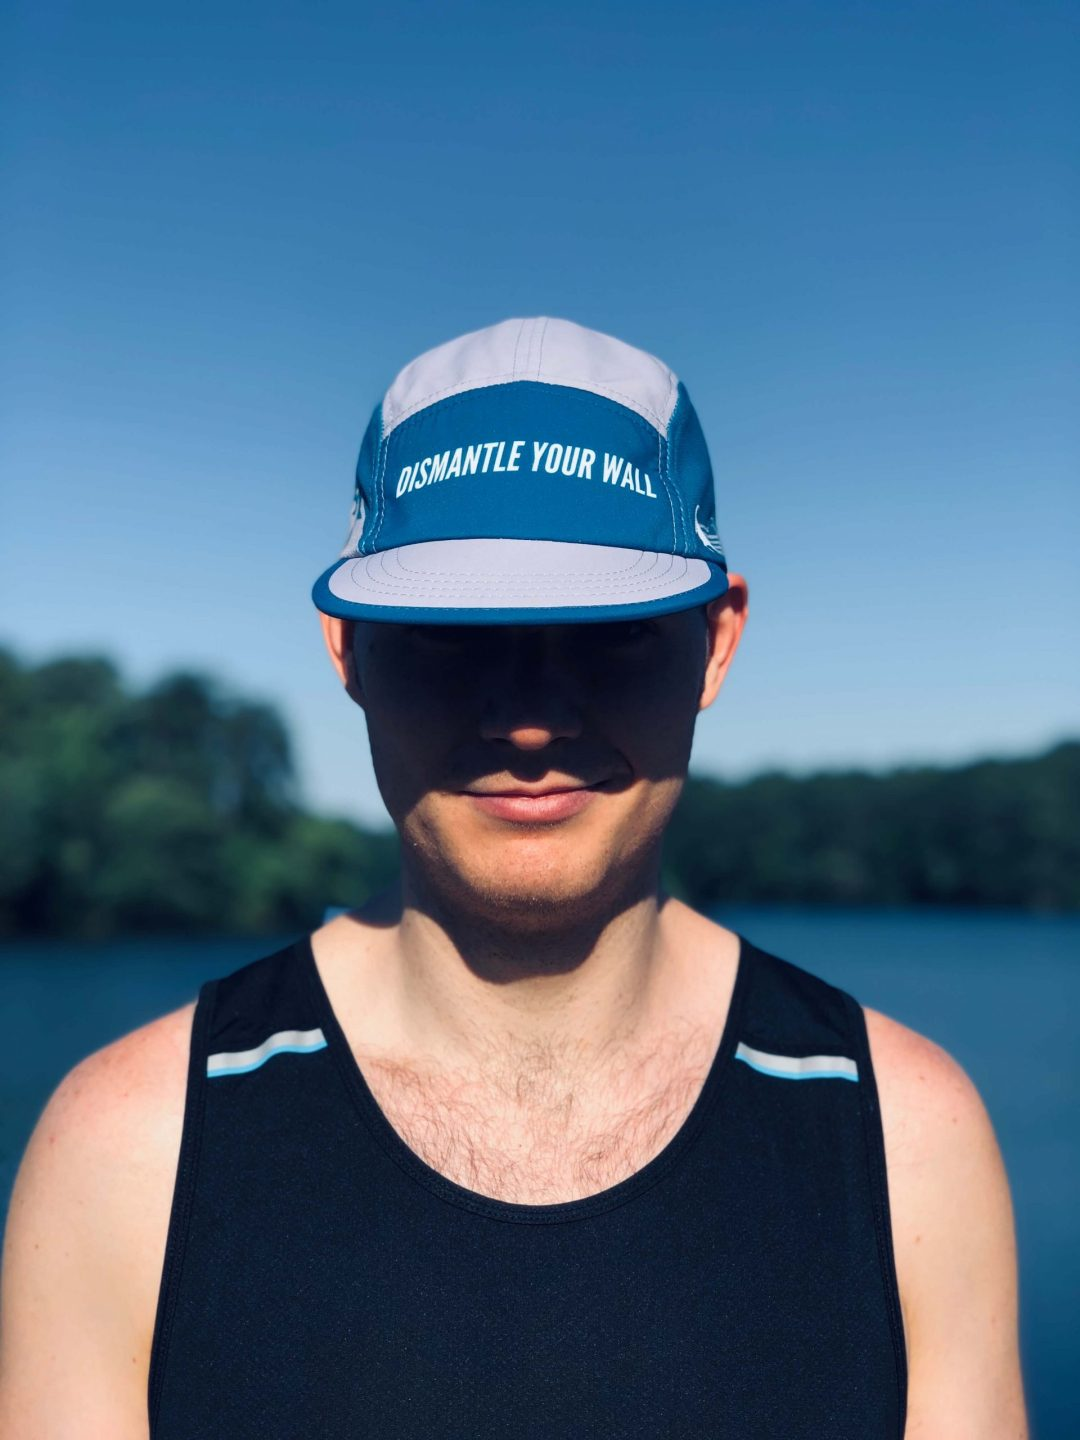 Dismantle Your Wall UltraCap Trail Running Cap